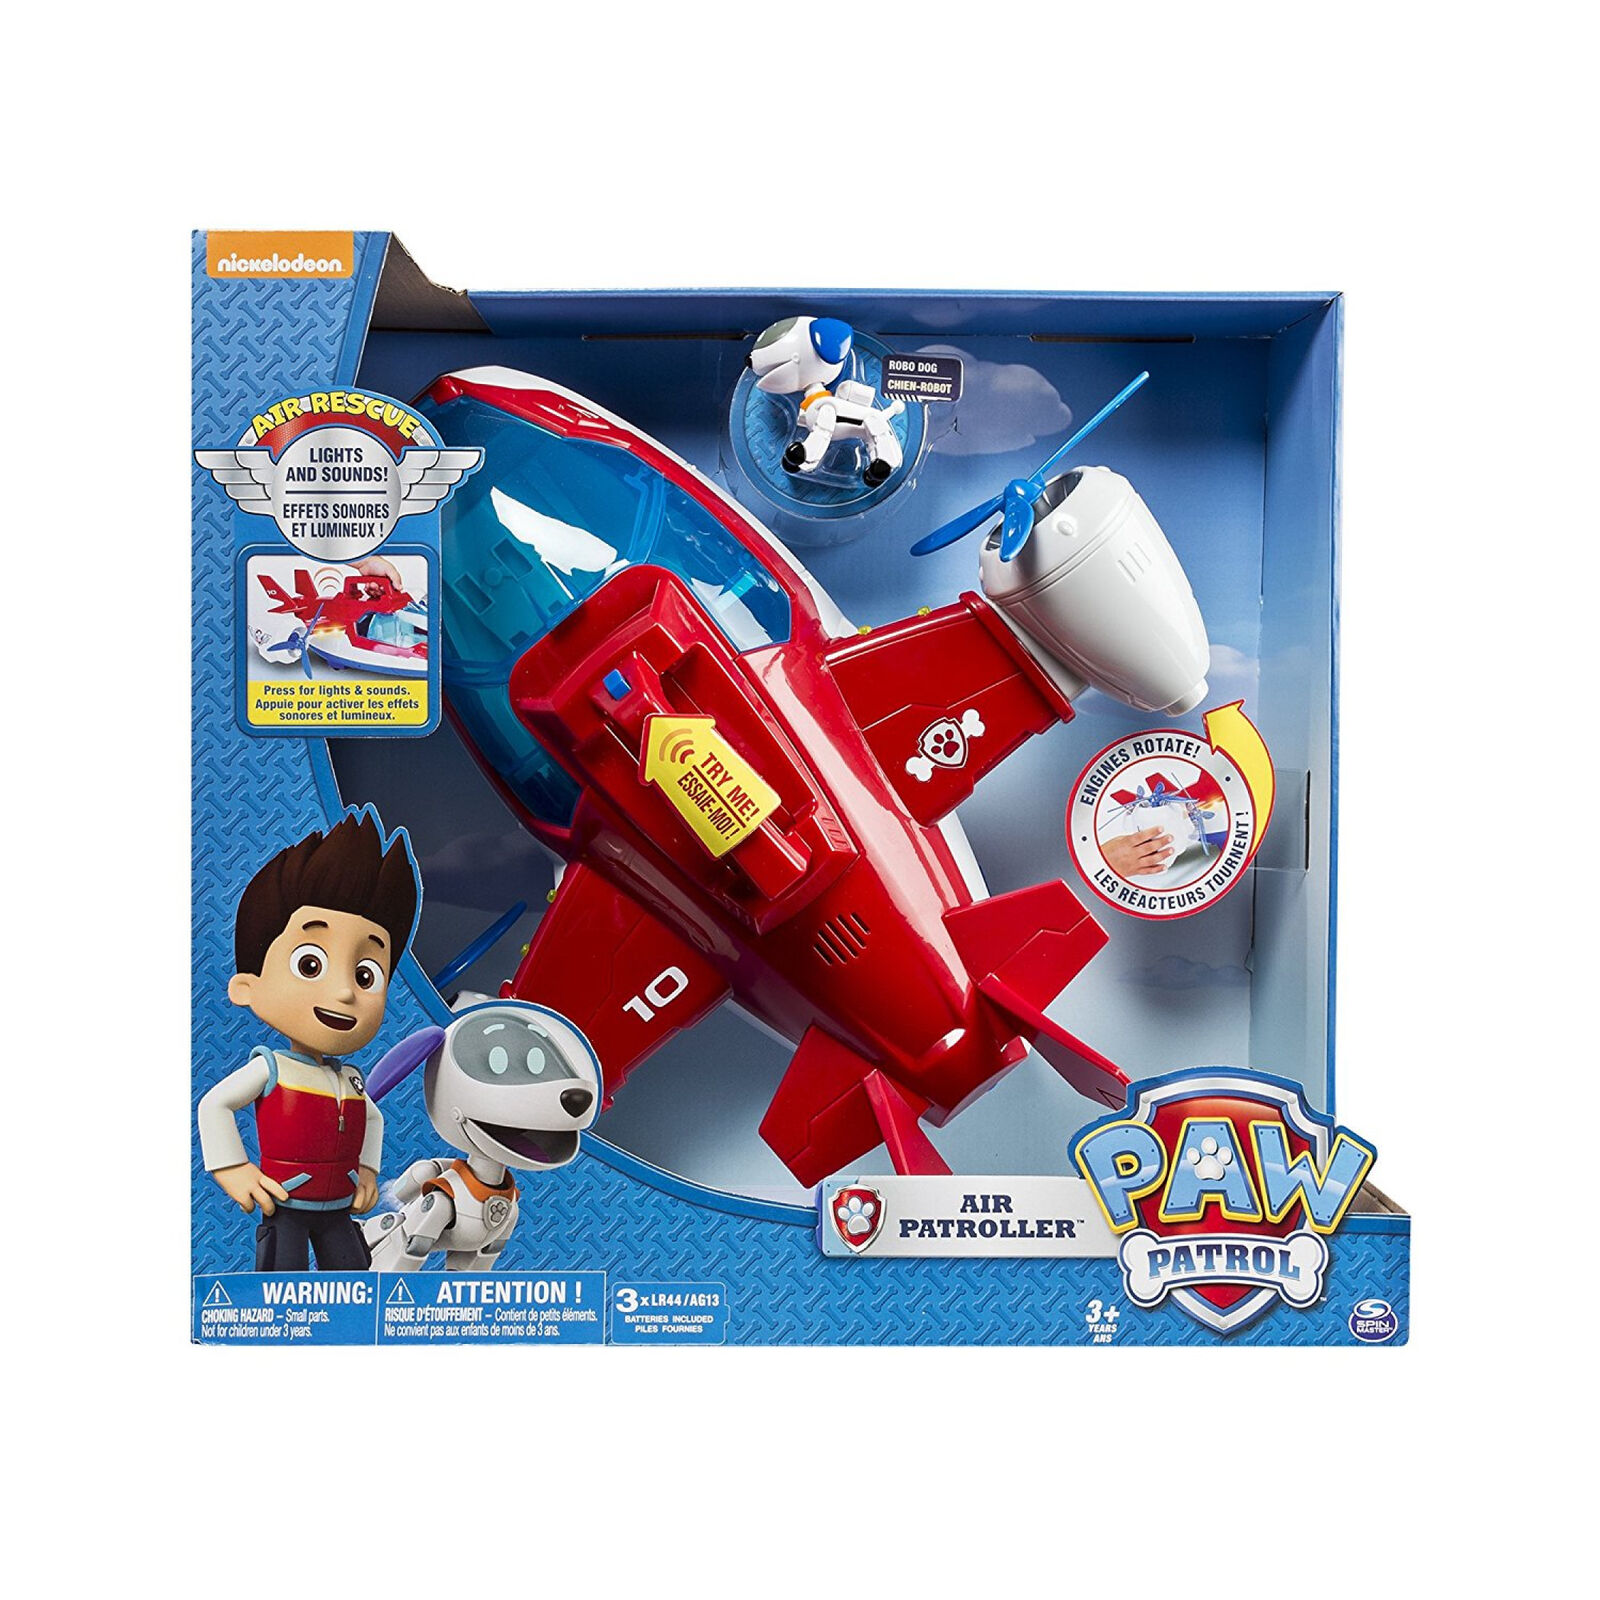 New Paw Patrol Air Patroller Plane Toy Playset, Changes to Helicopter